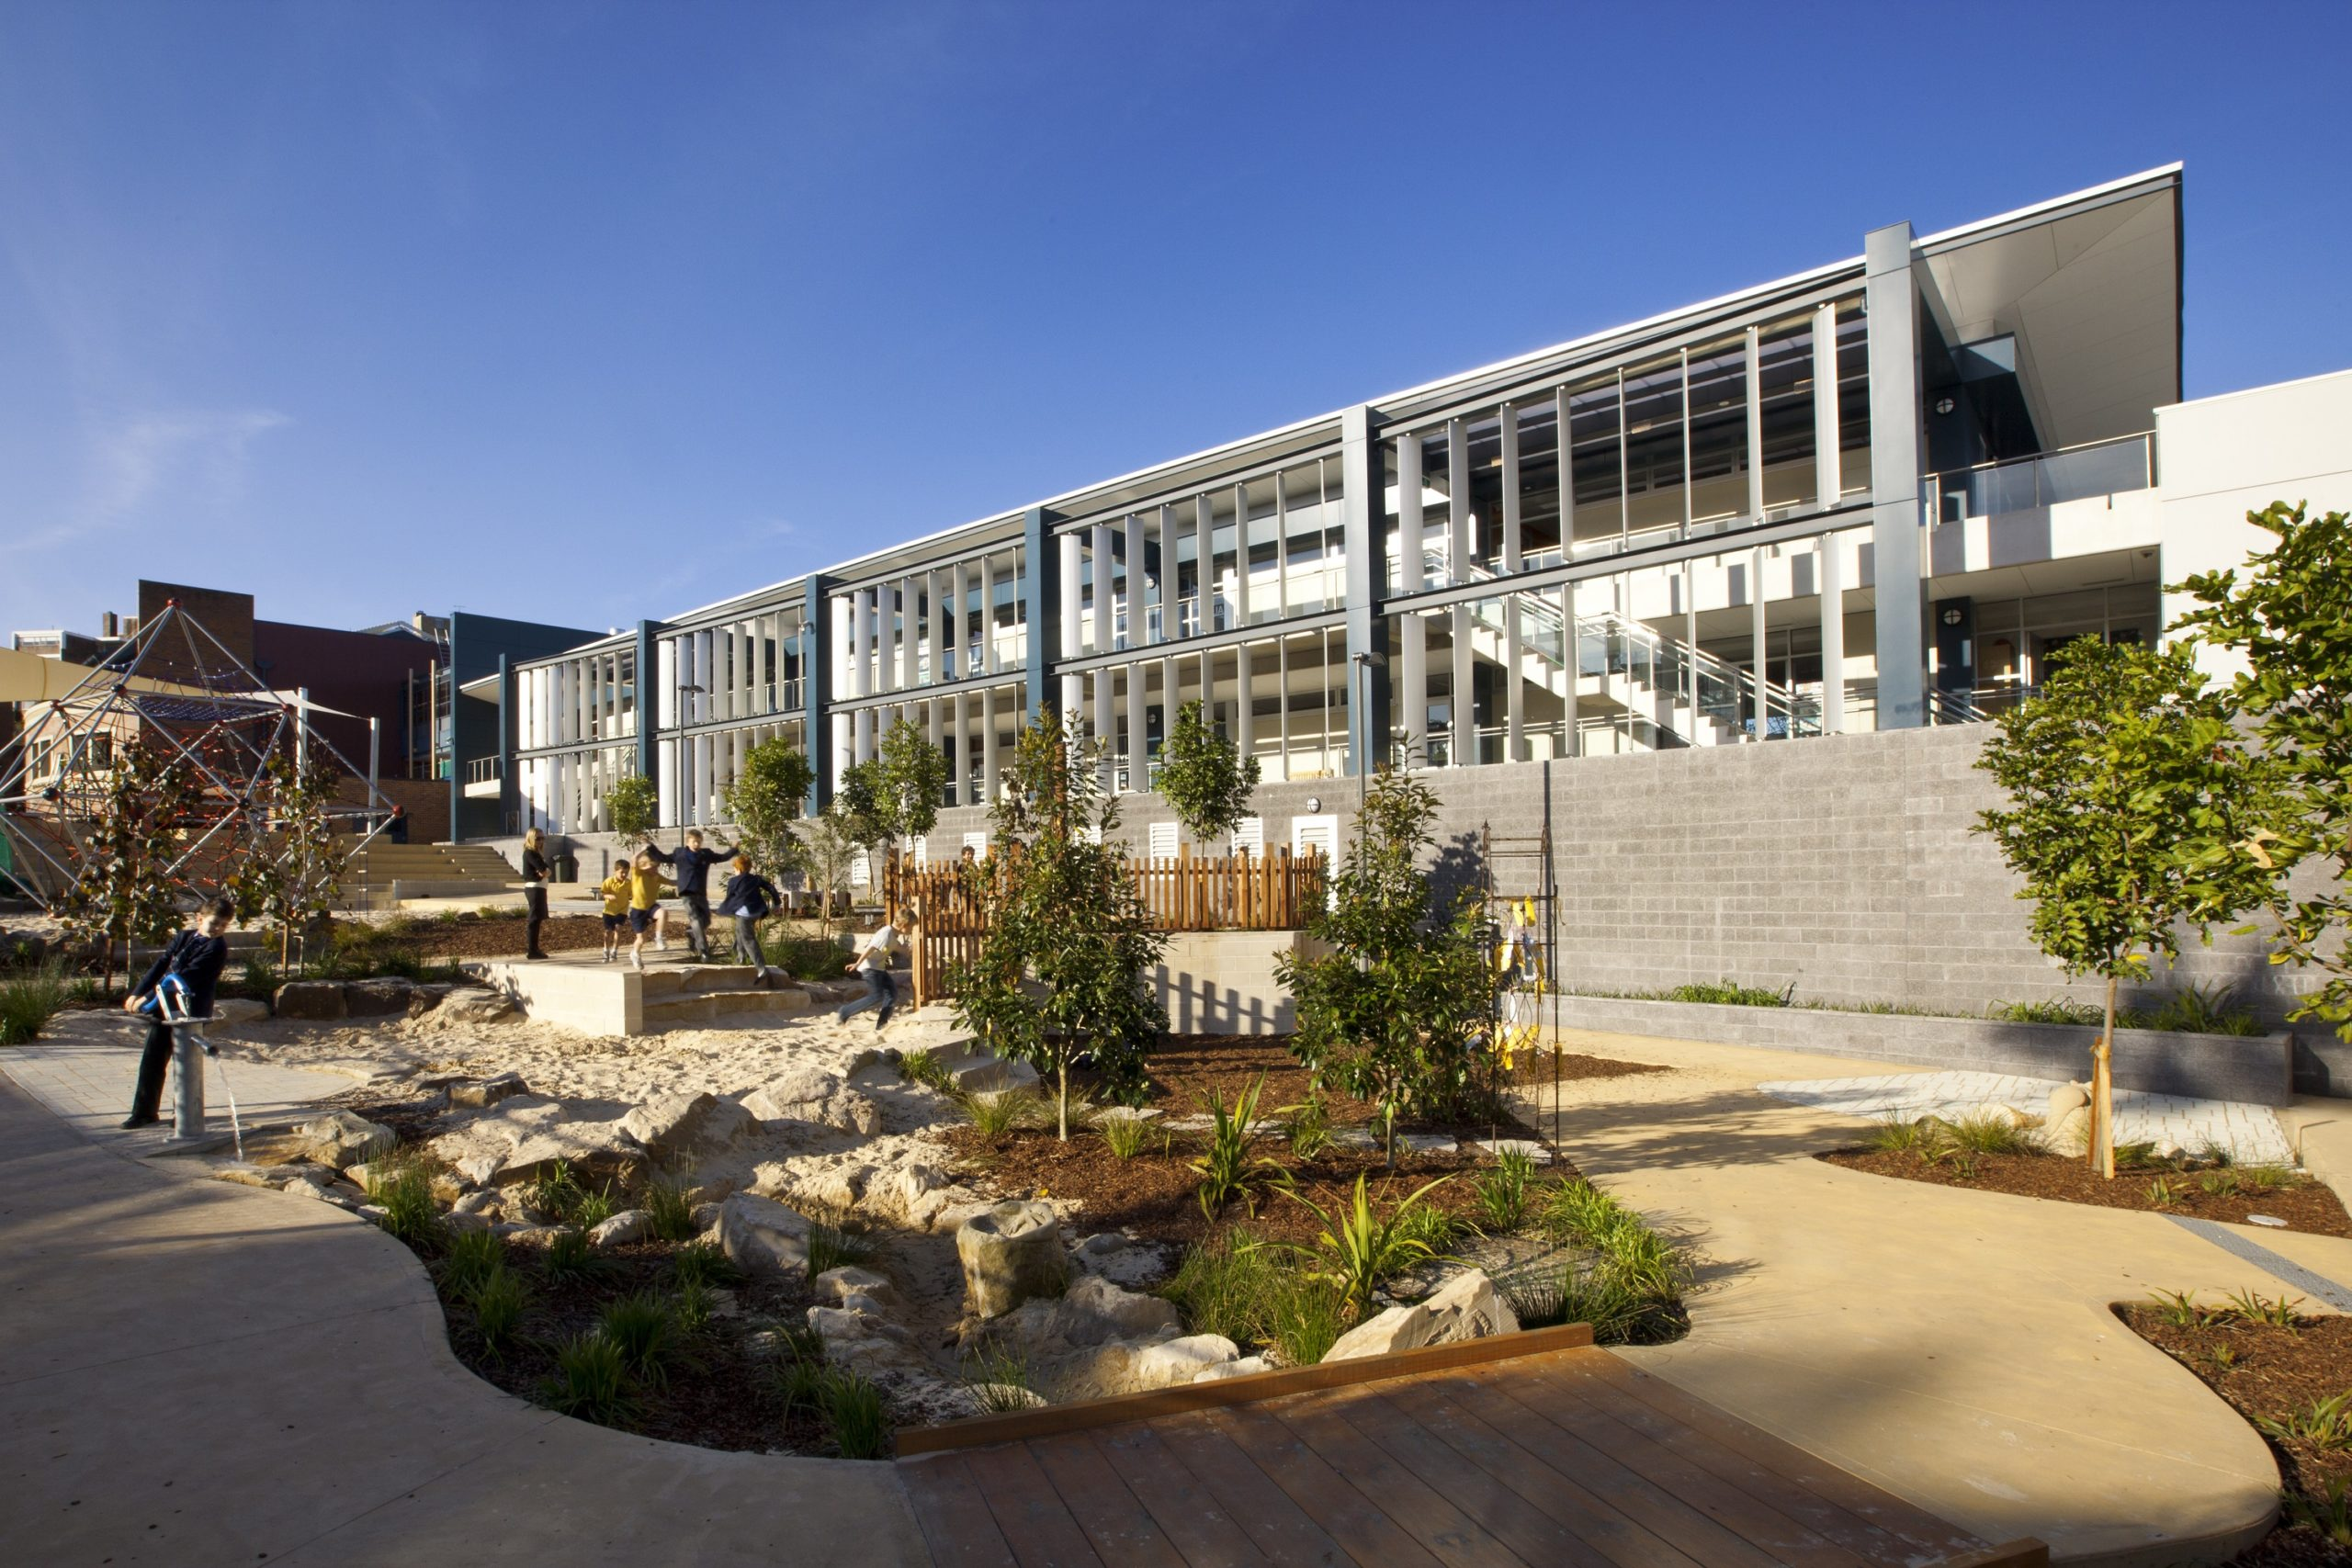 Redlands Preparatory School Exterior Architecture and Play Area – Gardner Wetherill GW 2